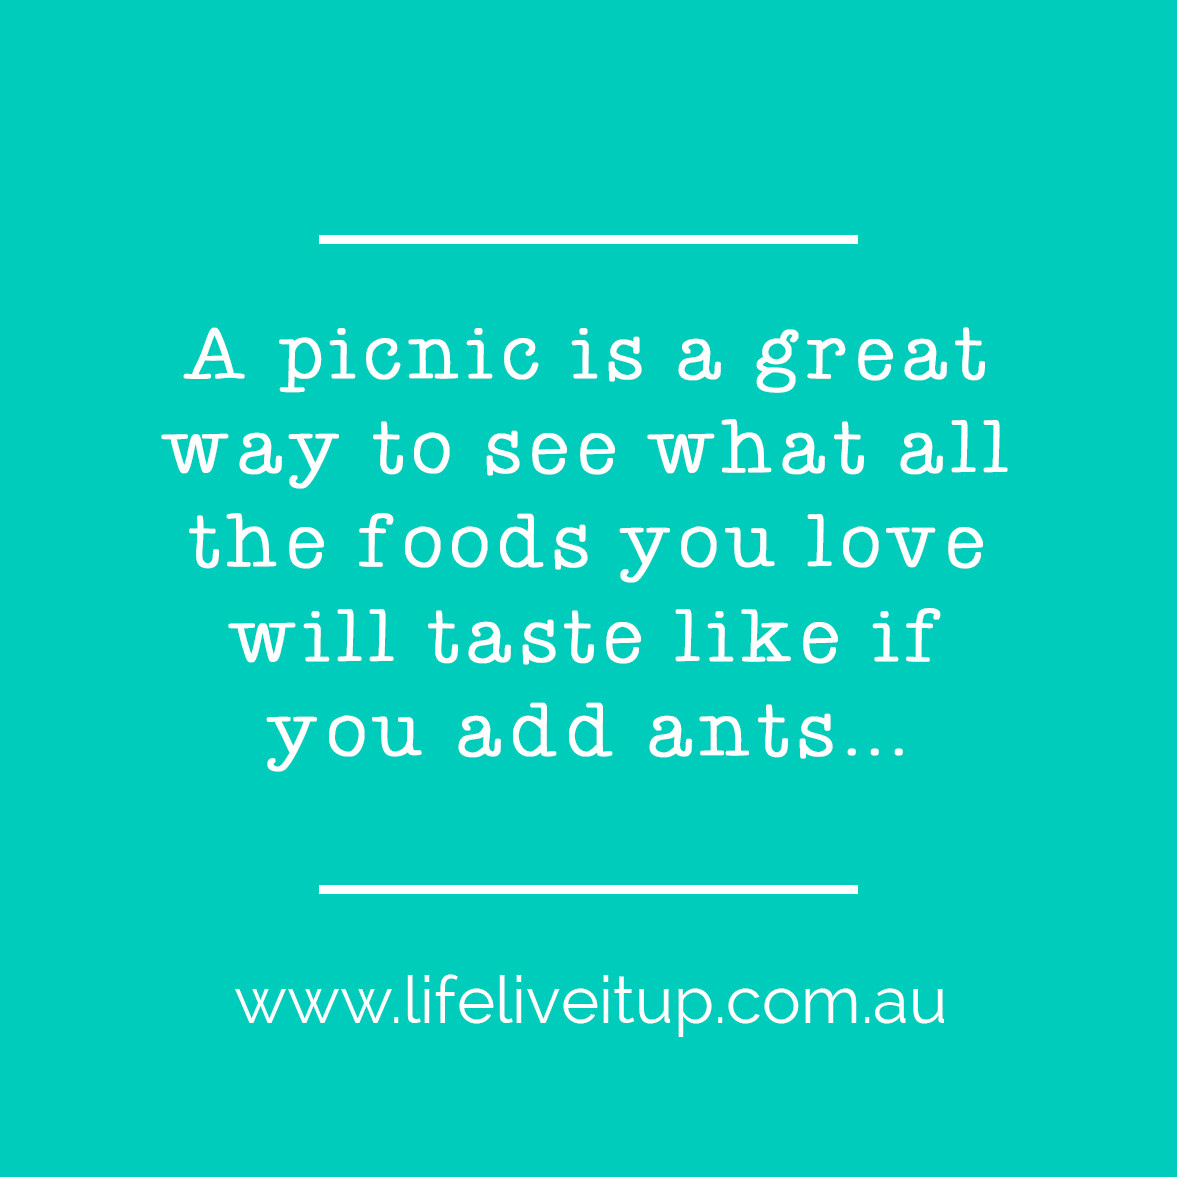 Quote says a picnic is a great way to see what all the foods you love will taste like if you add ants...